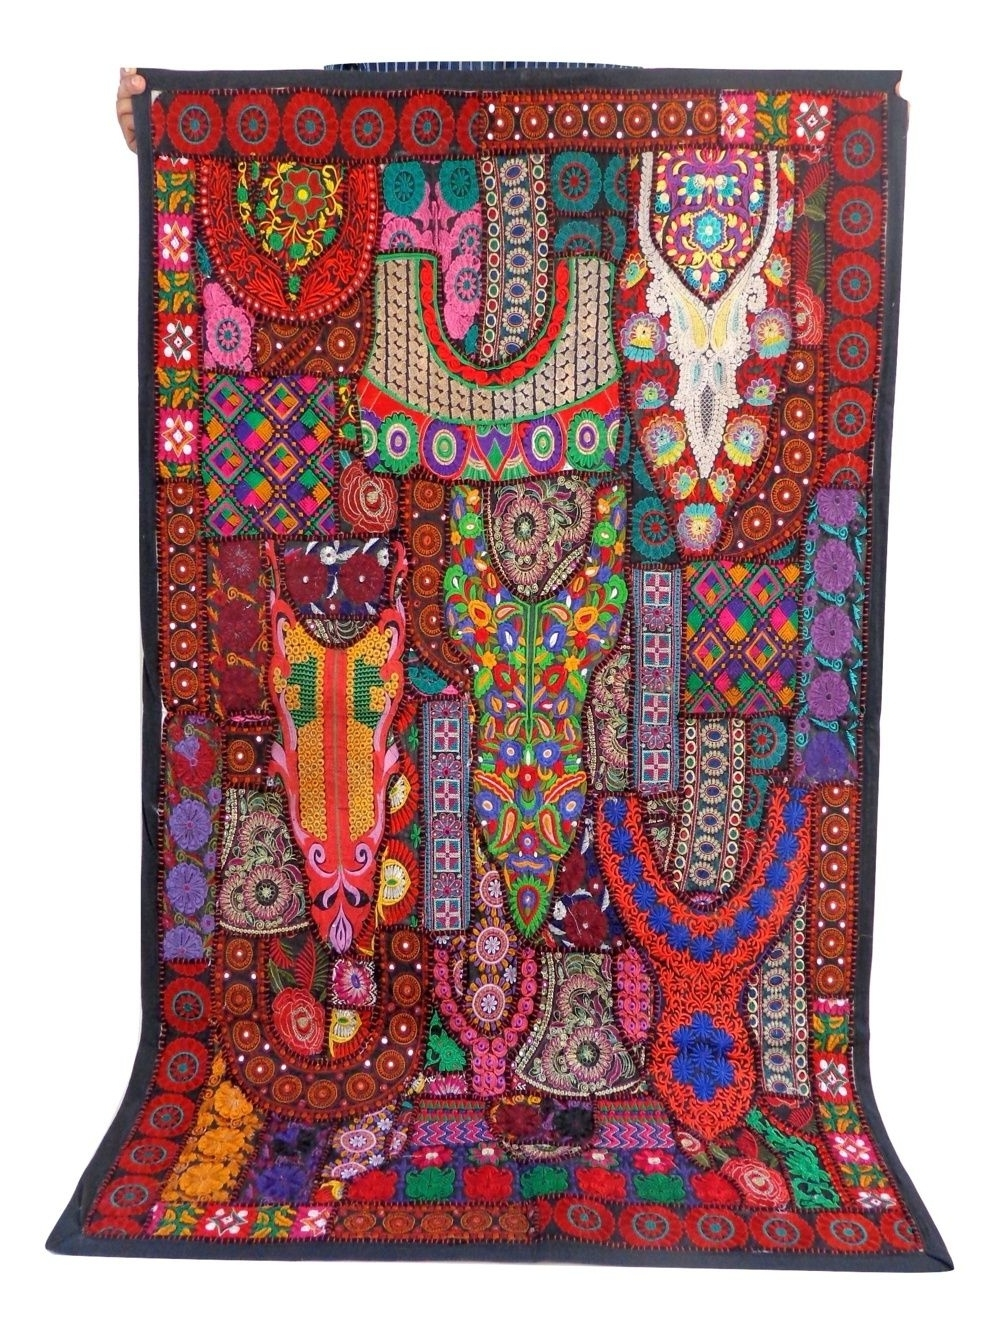 Indian Fabric Wall Art Within 2017 Designer Vintage Embroidered Patchwork Tapestry – Boho Hippie Wall (View 4 of 15)